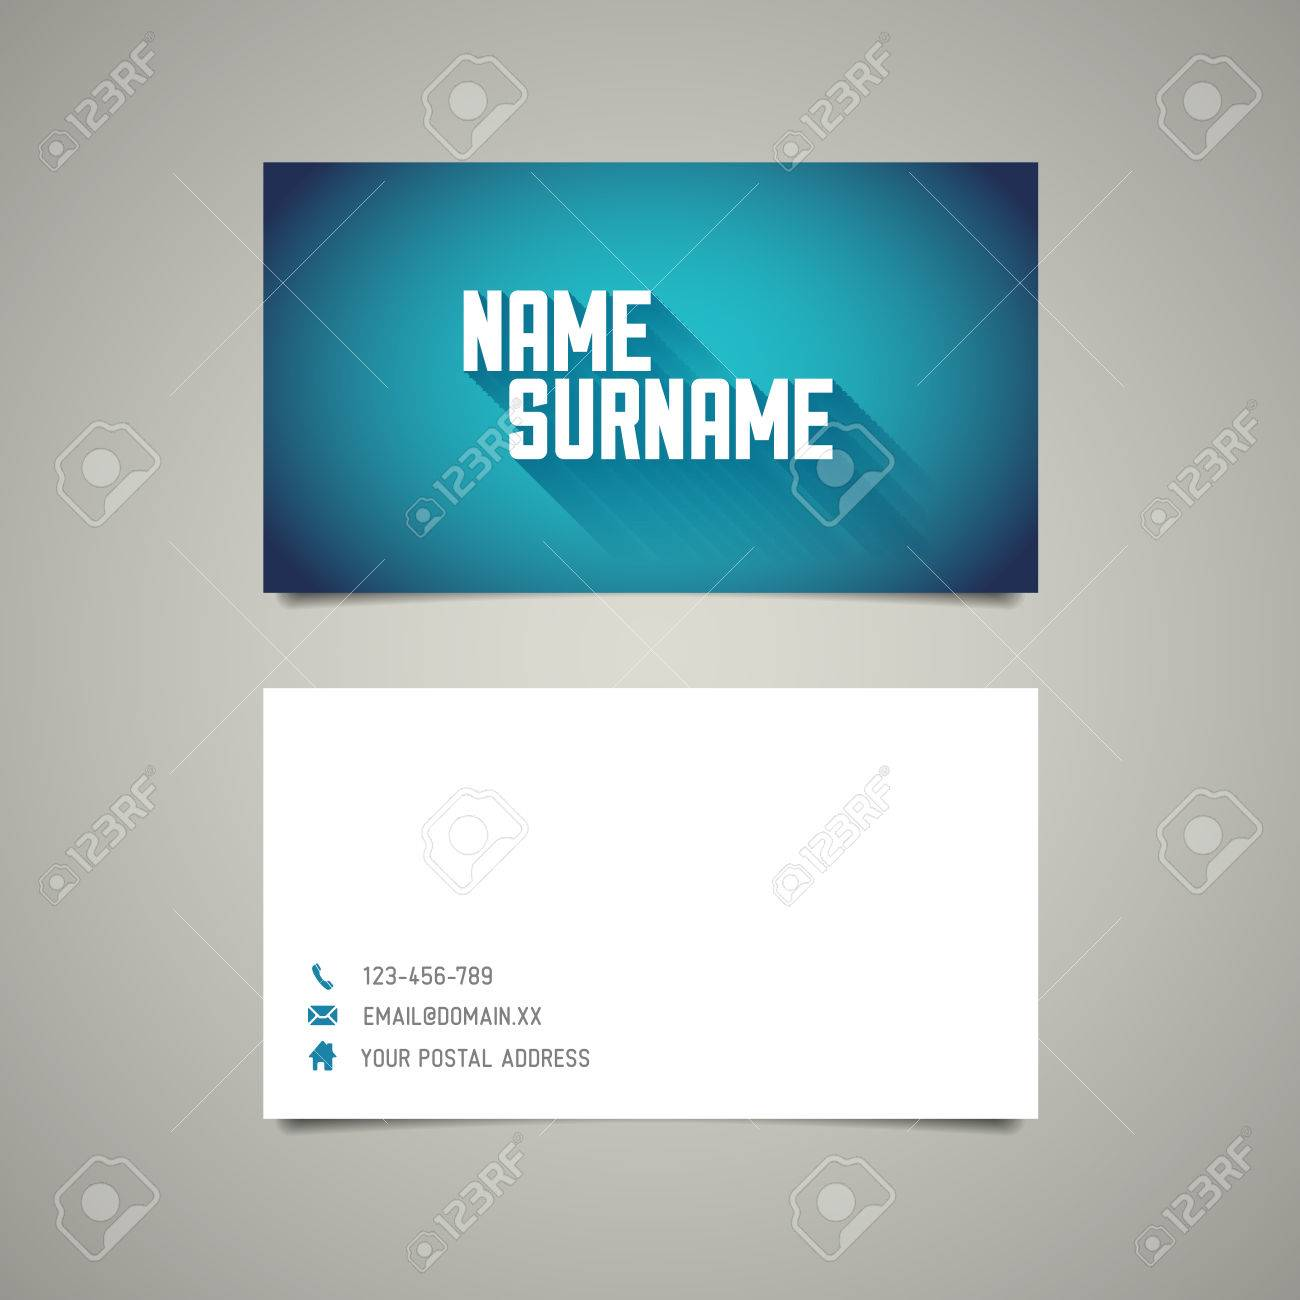 Modern Simple Business Card Template With Big Name Surname And ...